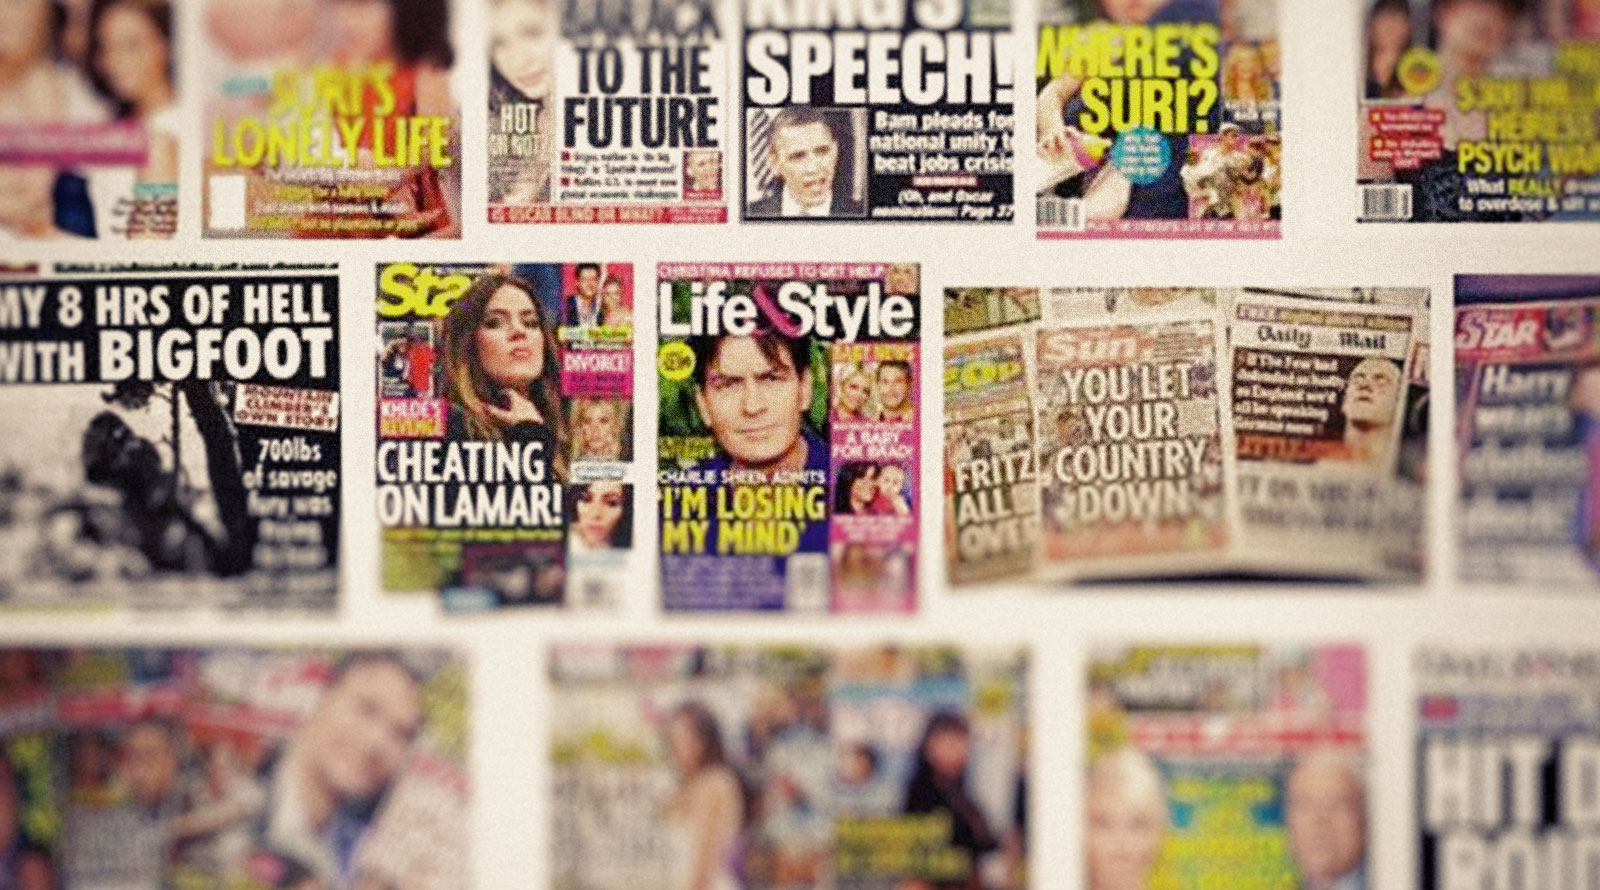 Trumps wild imaginings promulgated in tabloids alongside equally fact-challenged celebrity news